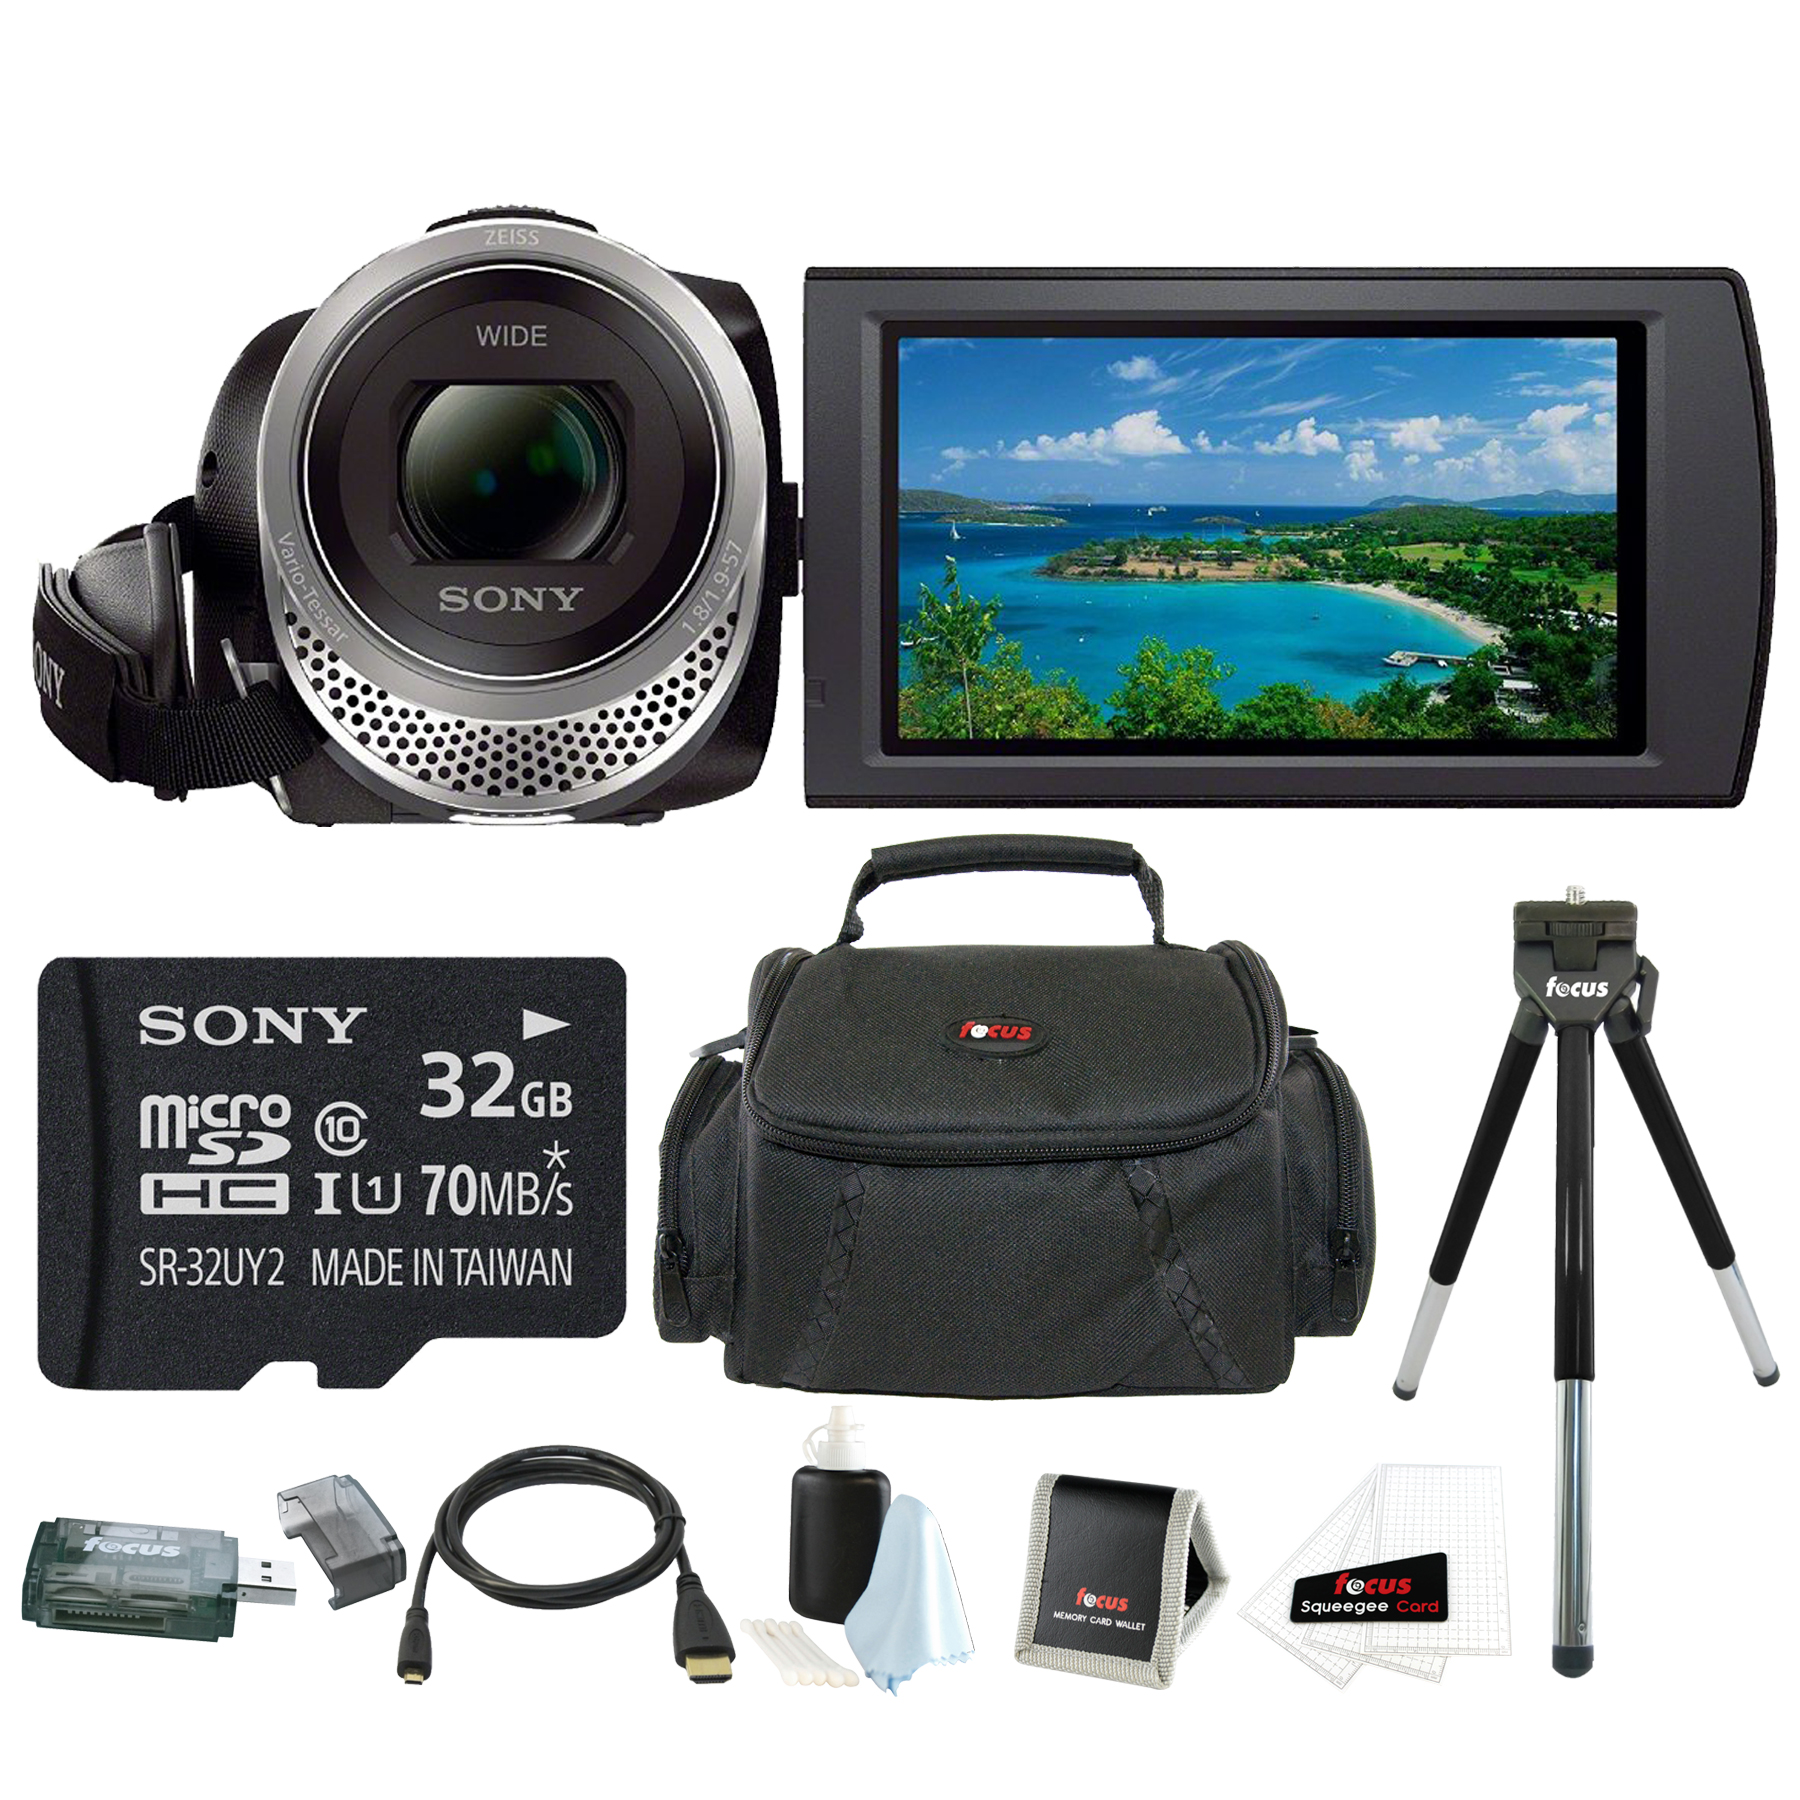 Sony HDR-CX455 Handycam Full HD 1080p Camcorder w/ 32GB M...